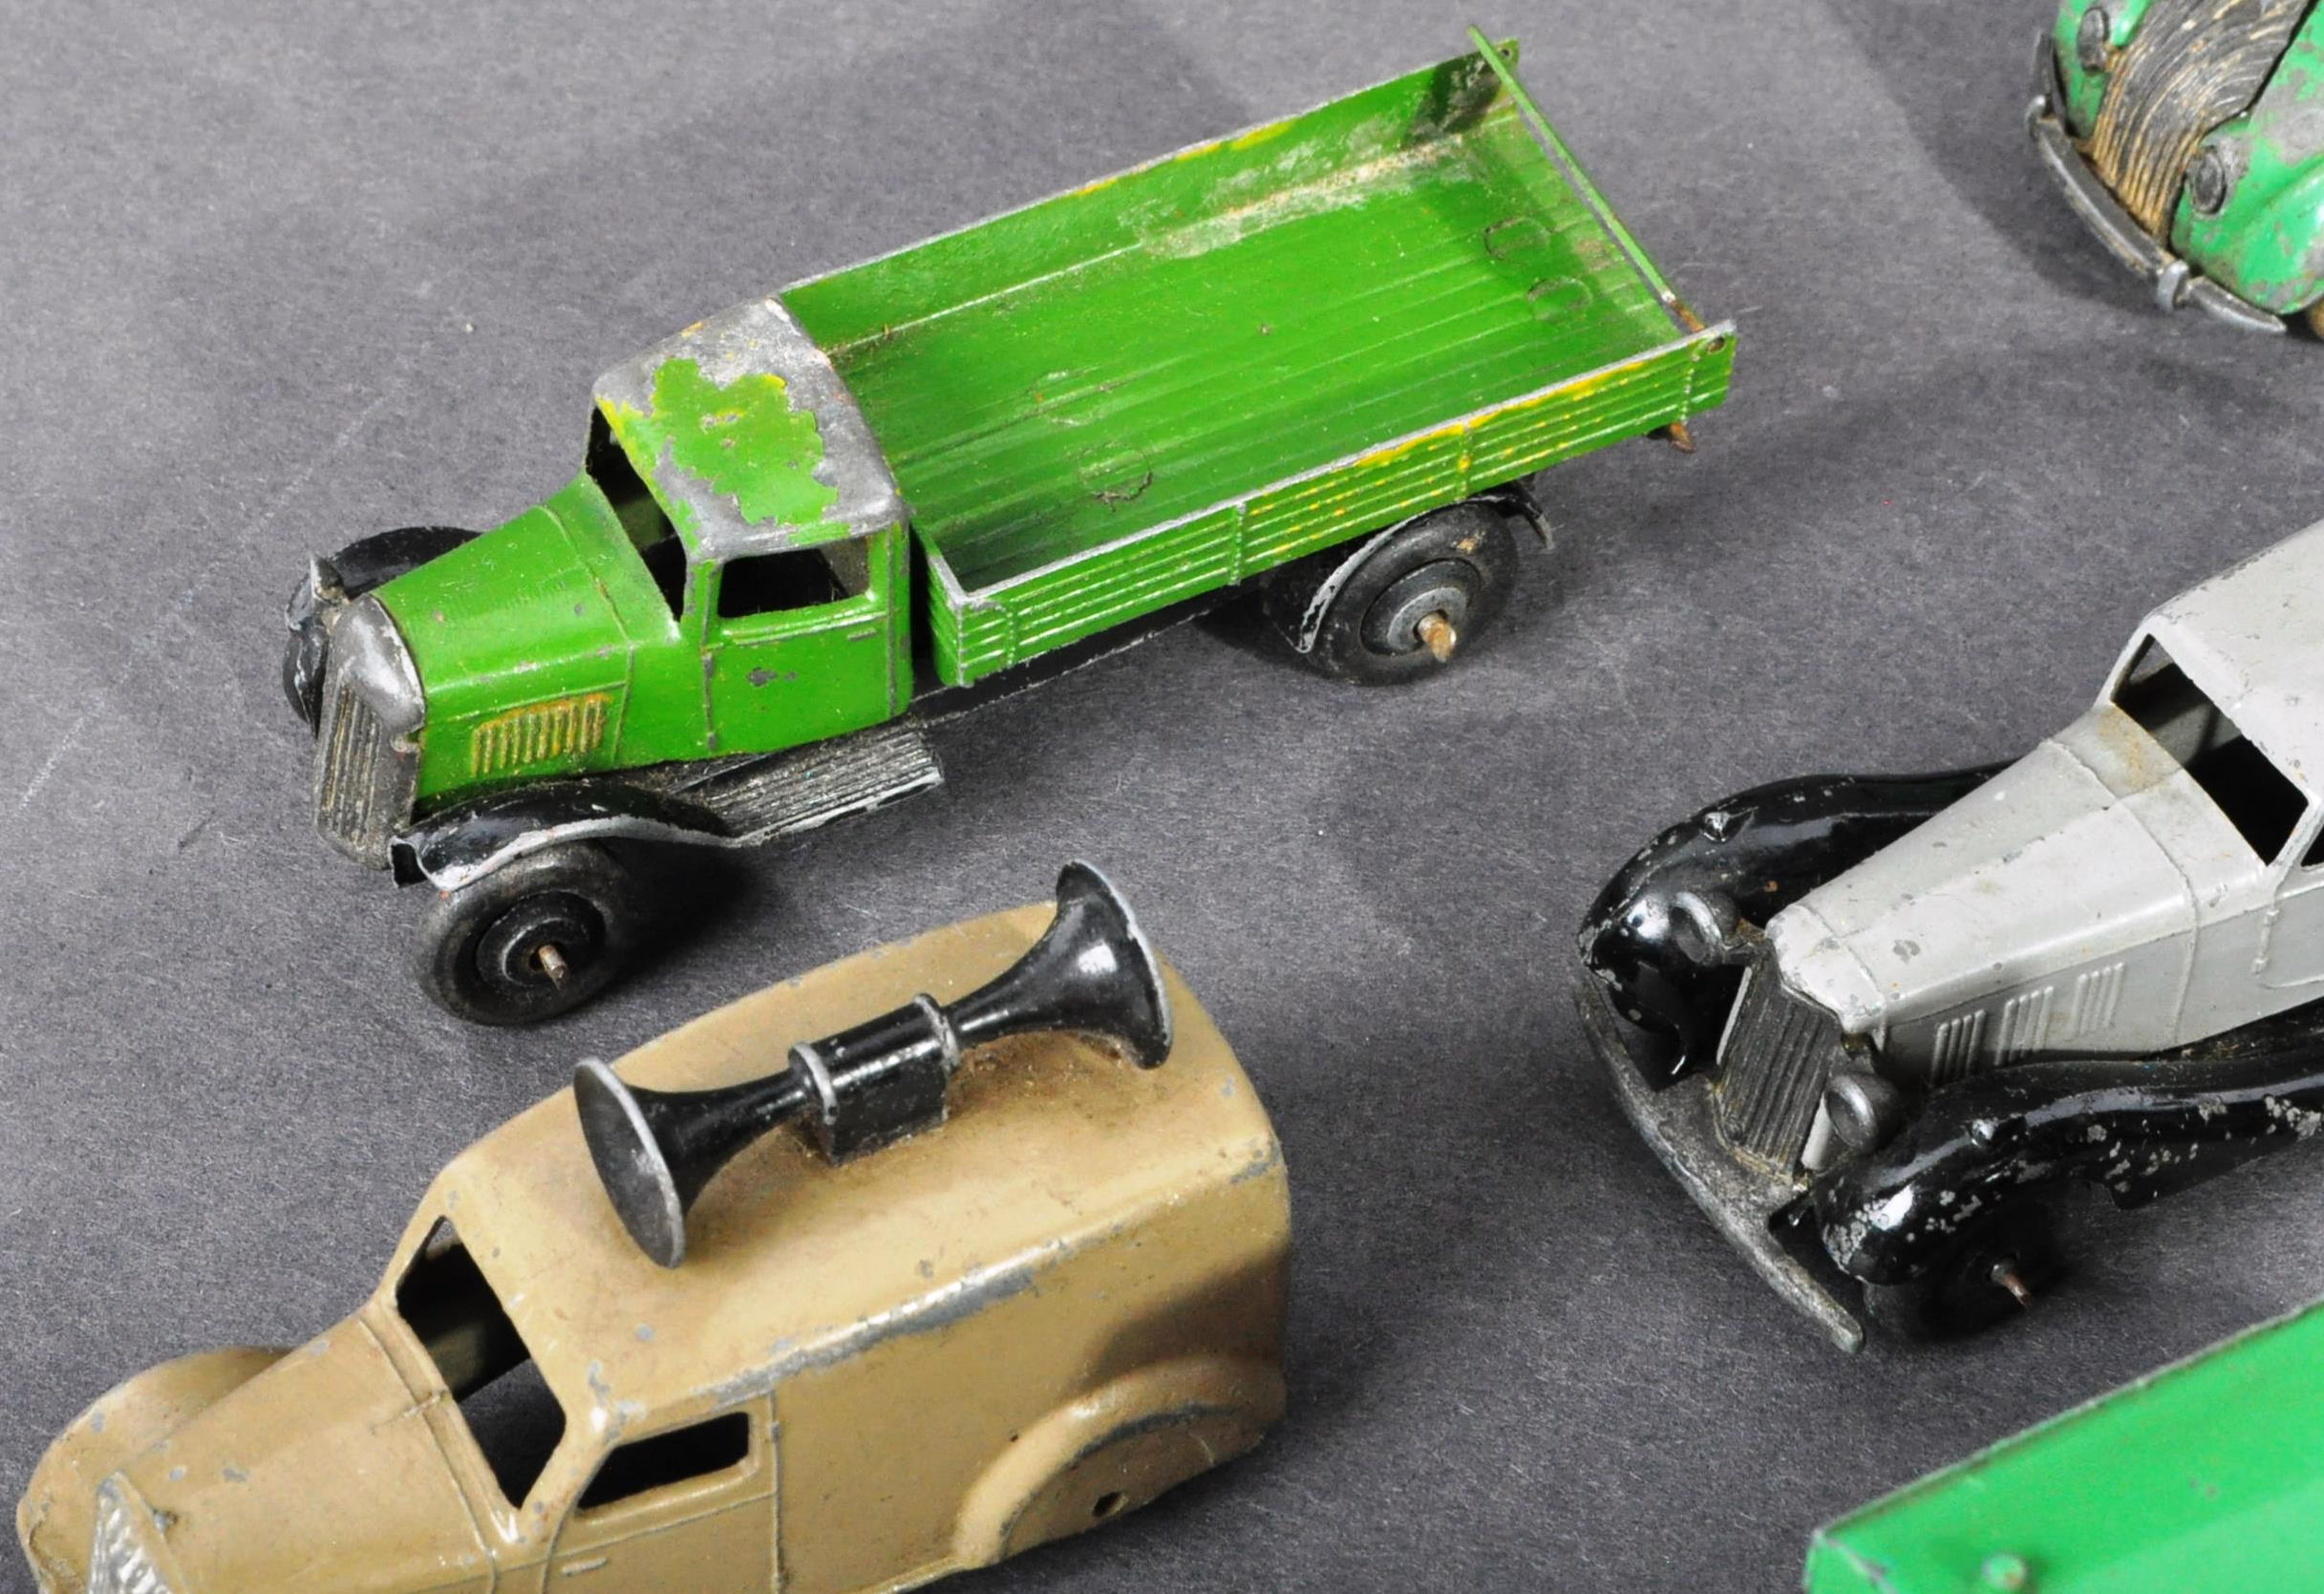 COLLECTION OF ORIGINAL VINTAGE DINKY TOYS DIECAST MODELS - Image 2 of 6